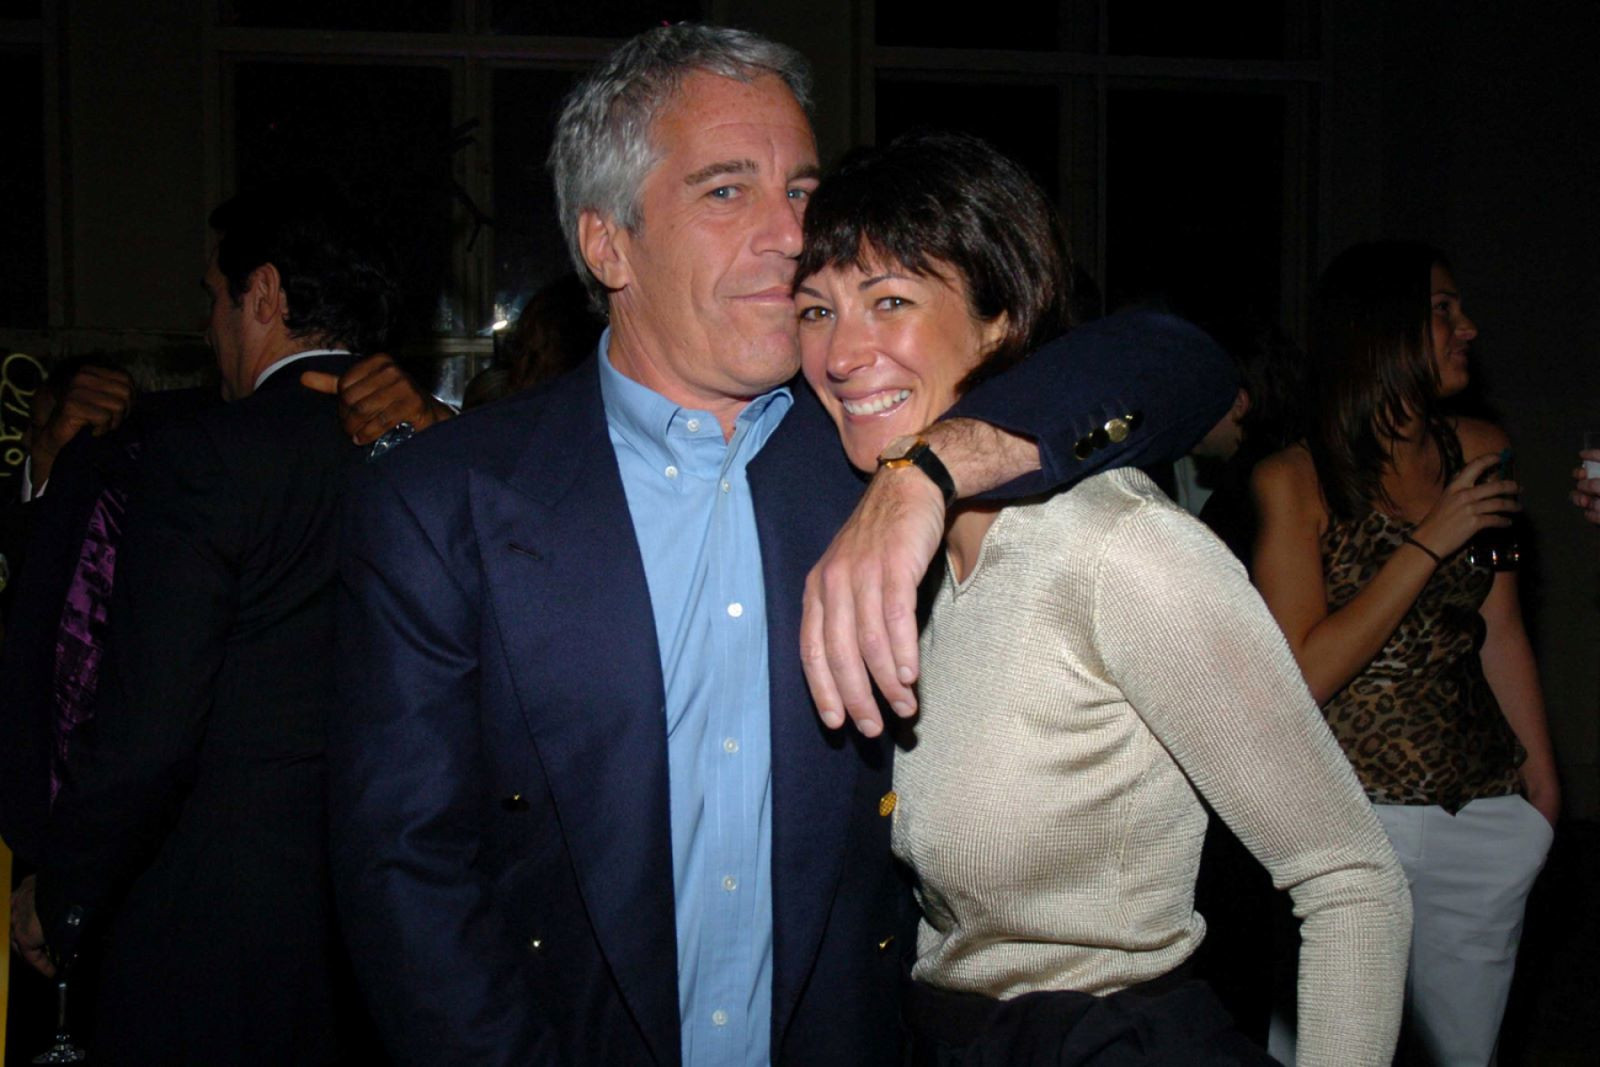 Jeffrey Epstein was a well-educated man, but where did he learn his skill for sex trafficking? We look back at the mogul's education record.